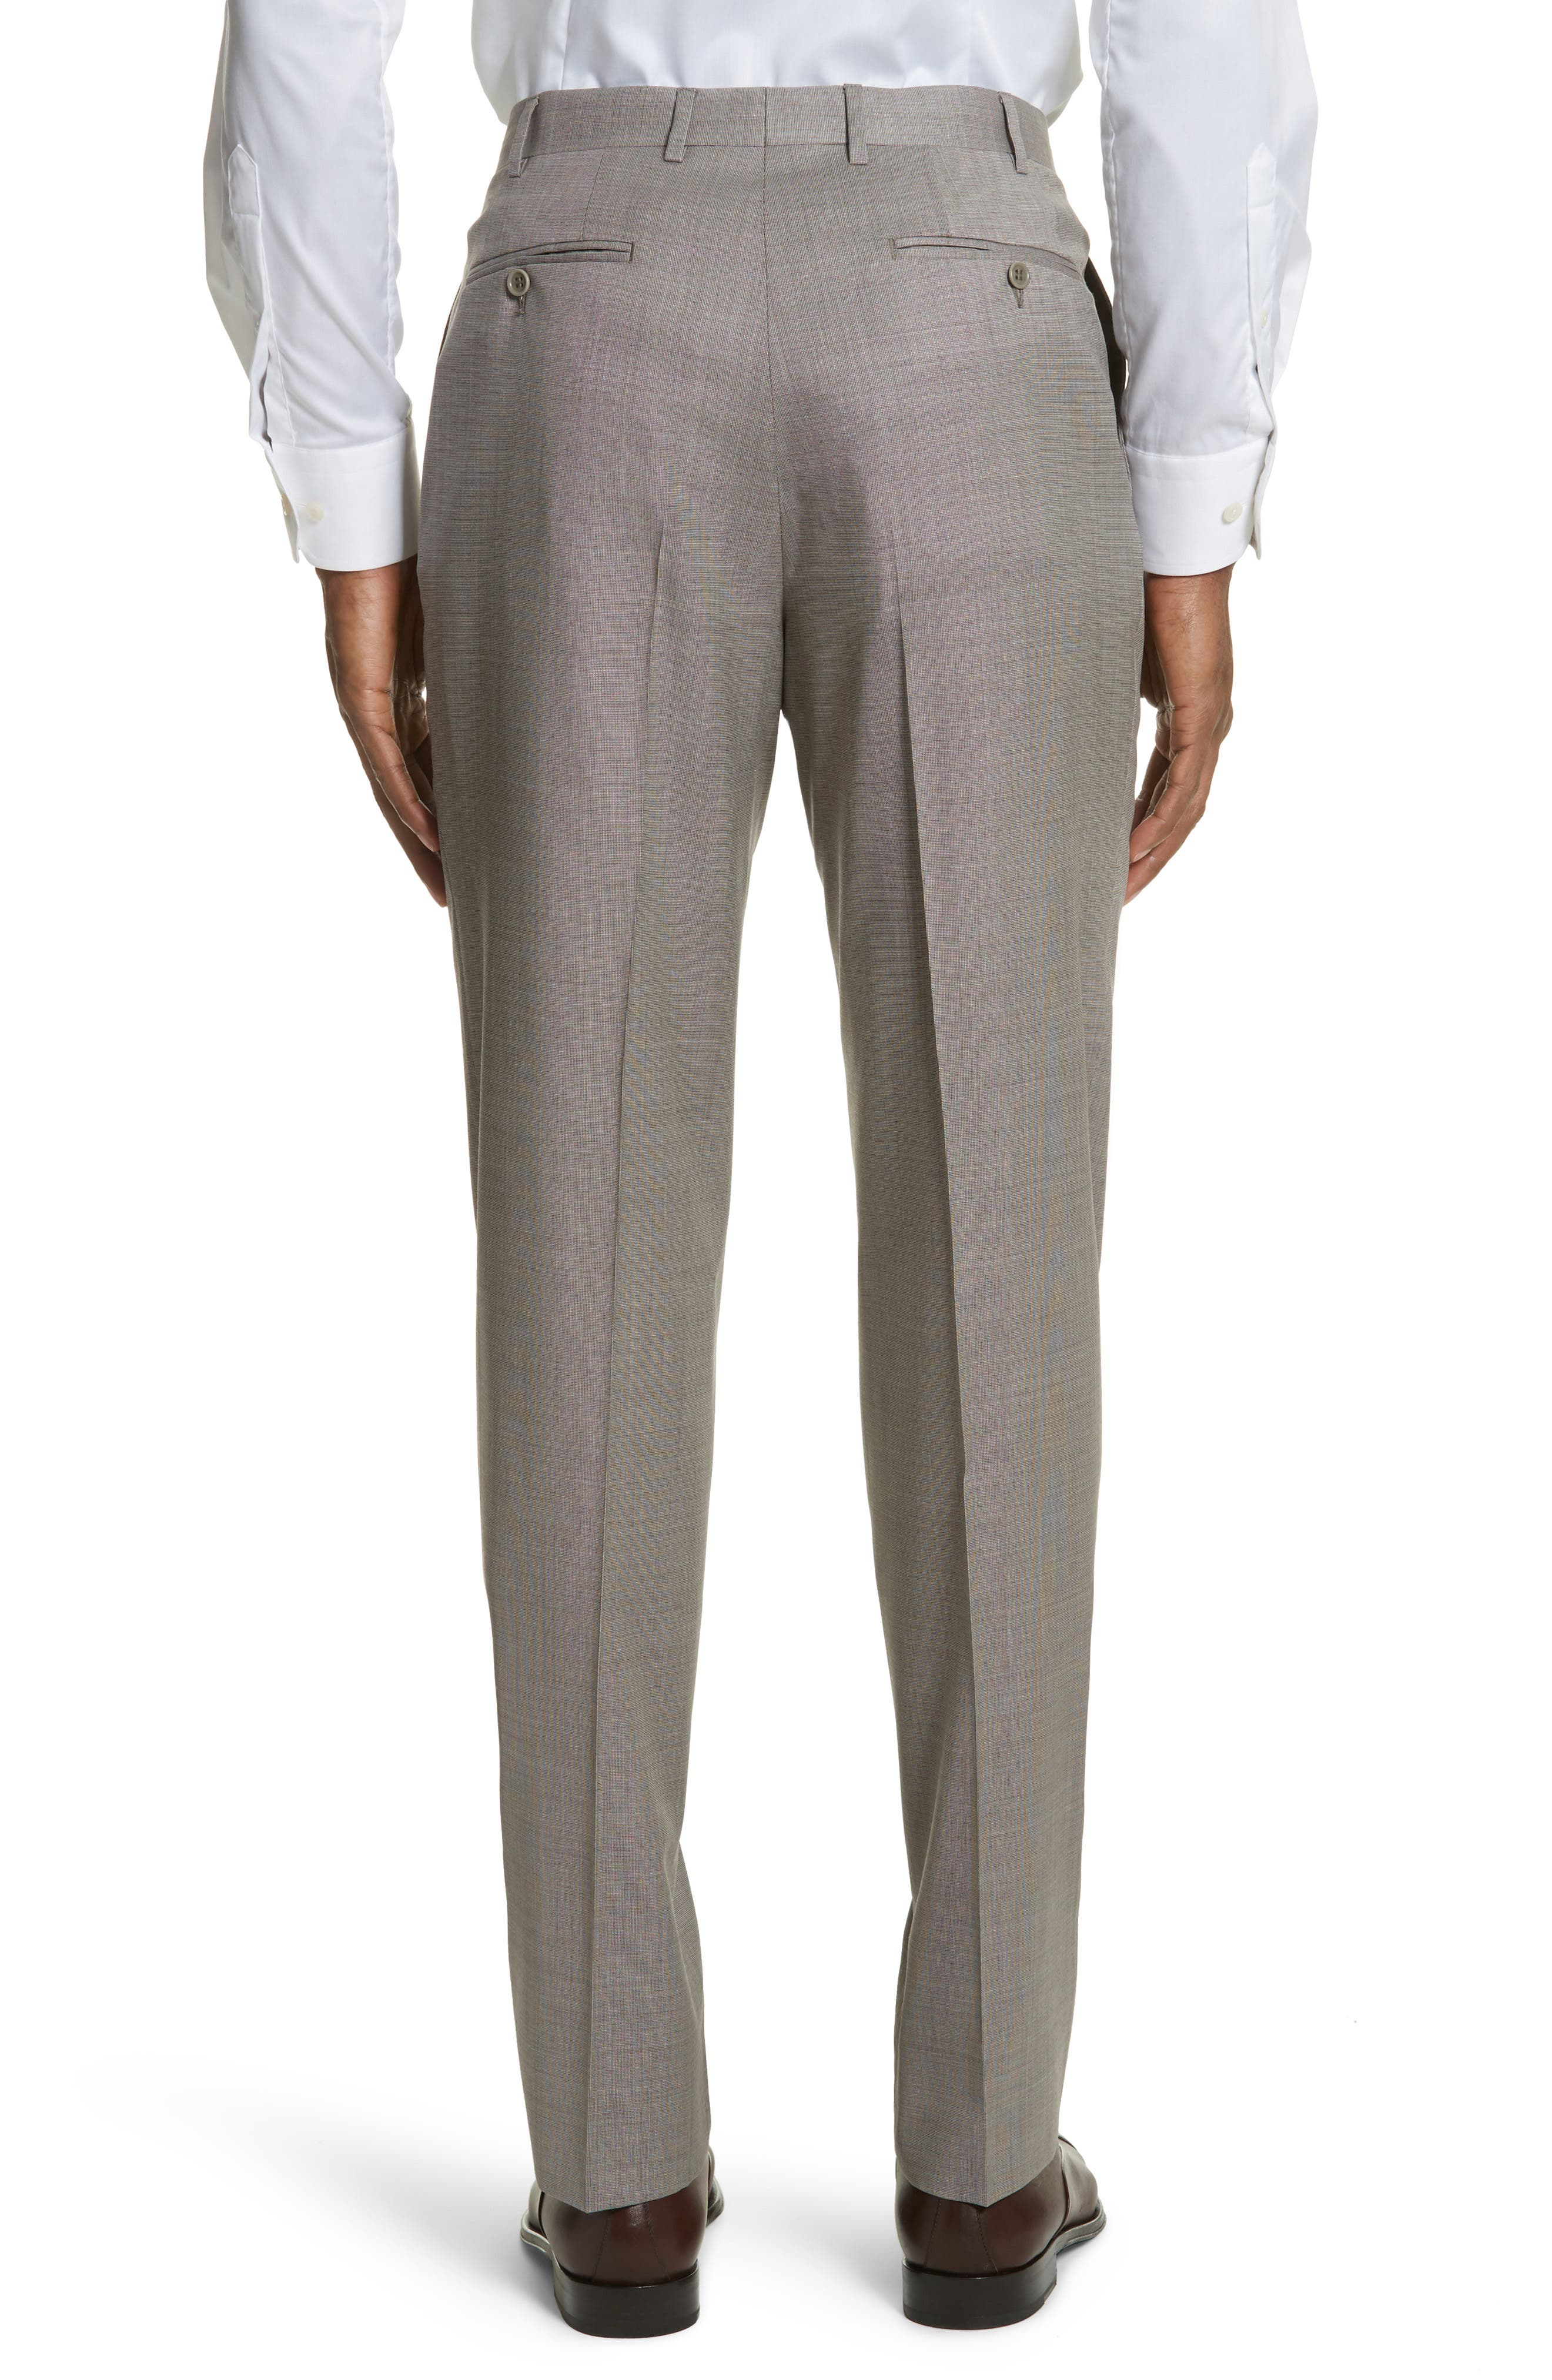 Flat Front Solid Wool Trousers,                             Alternate thumbnail 2, color,                             252